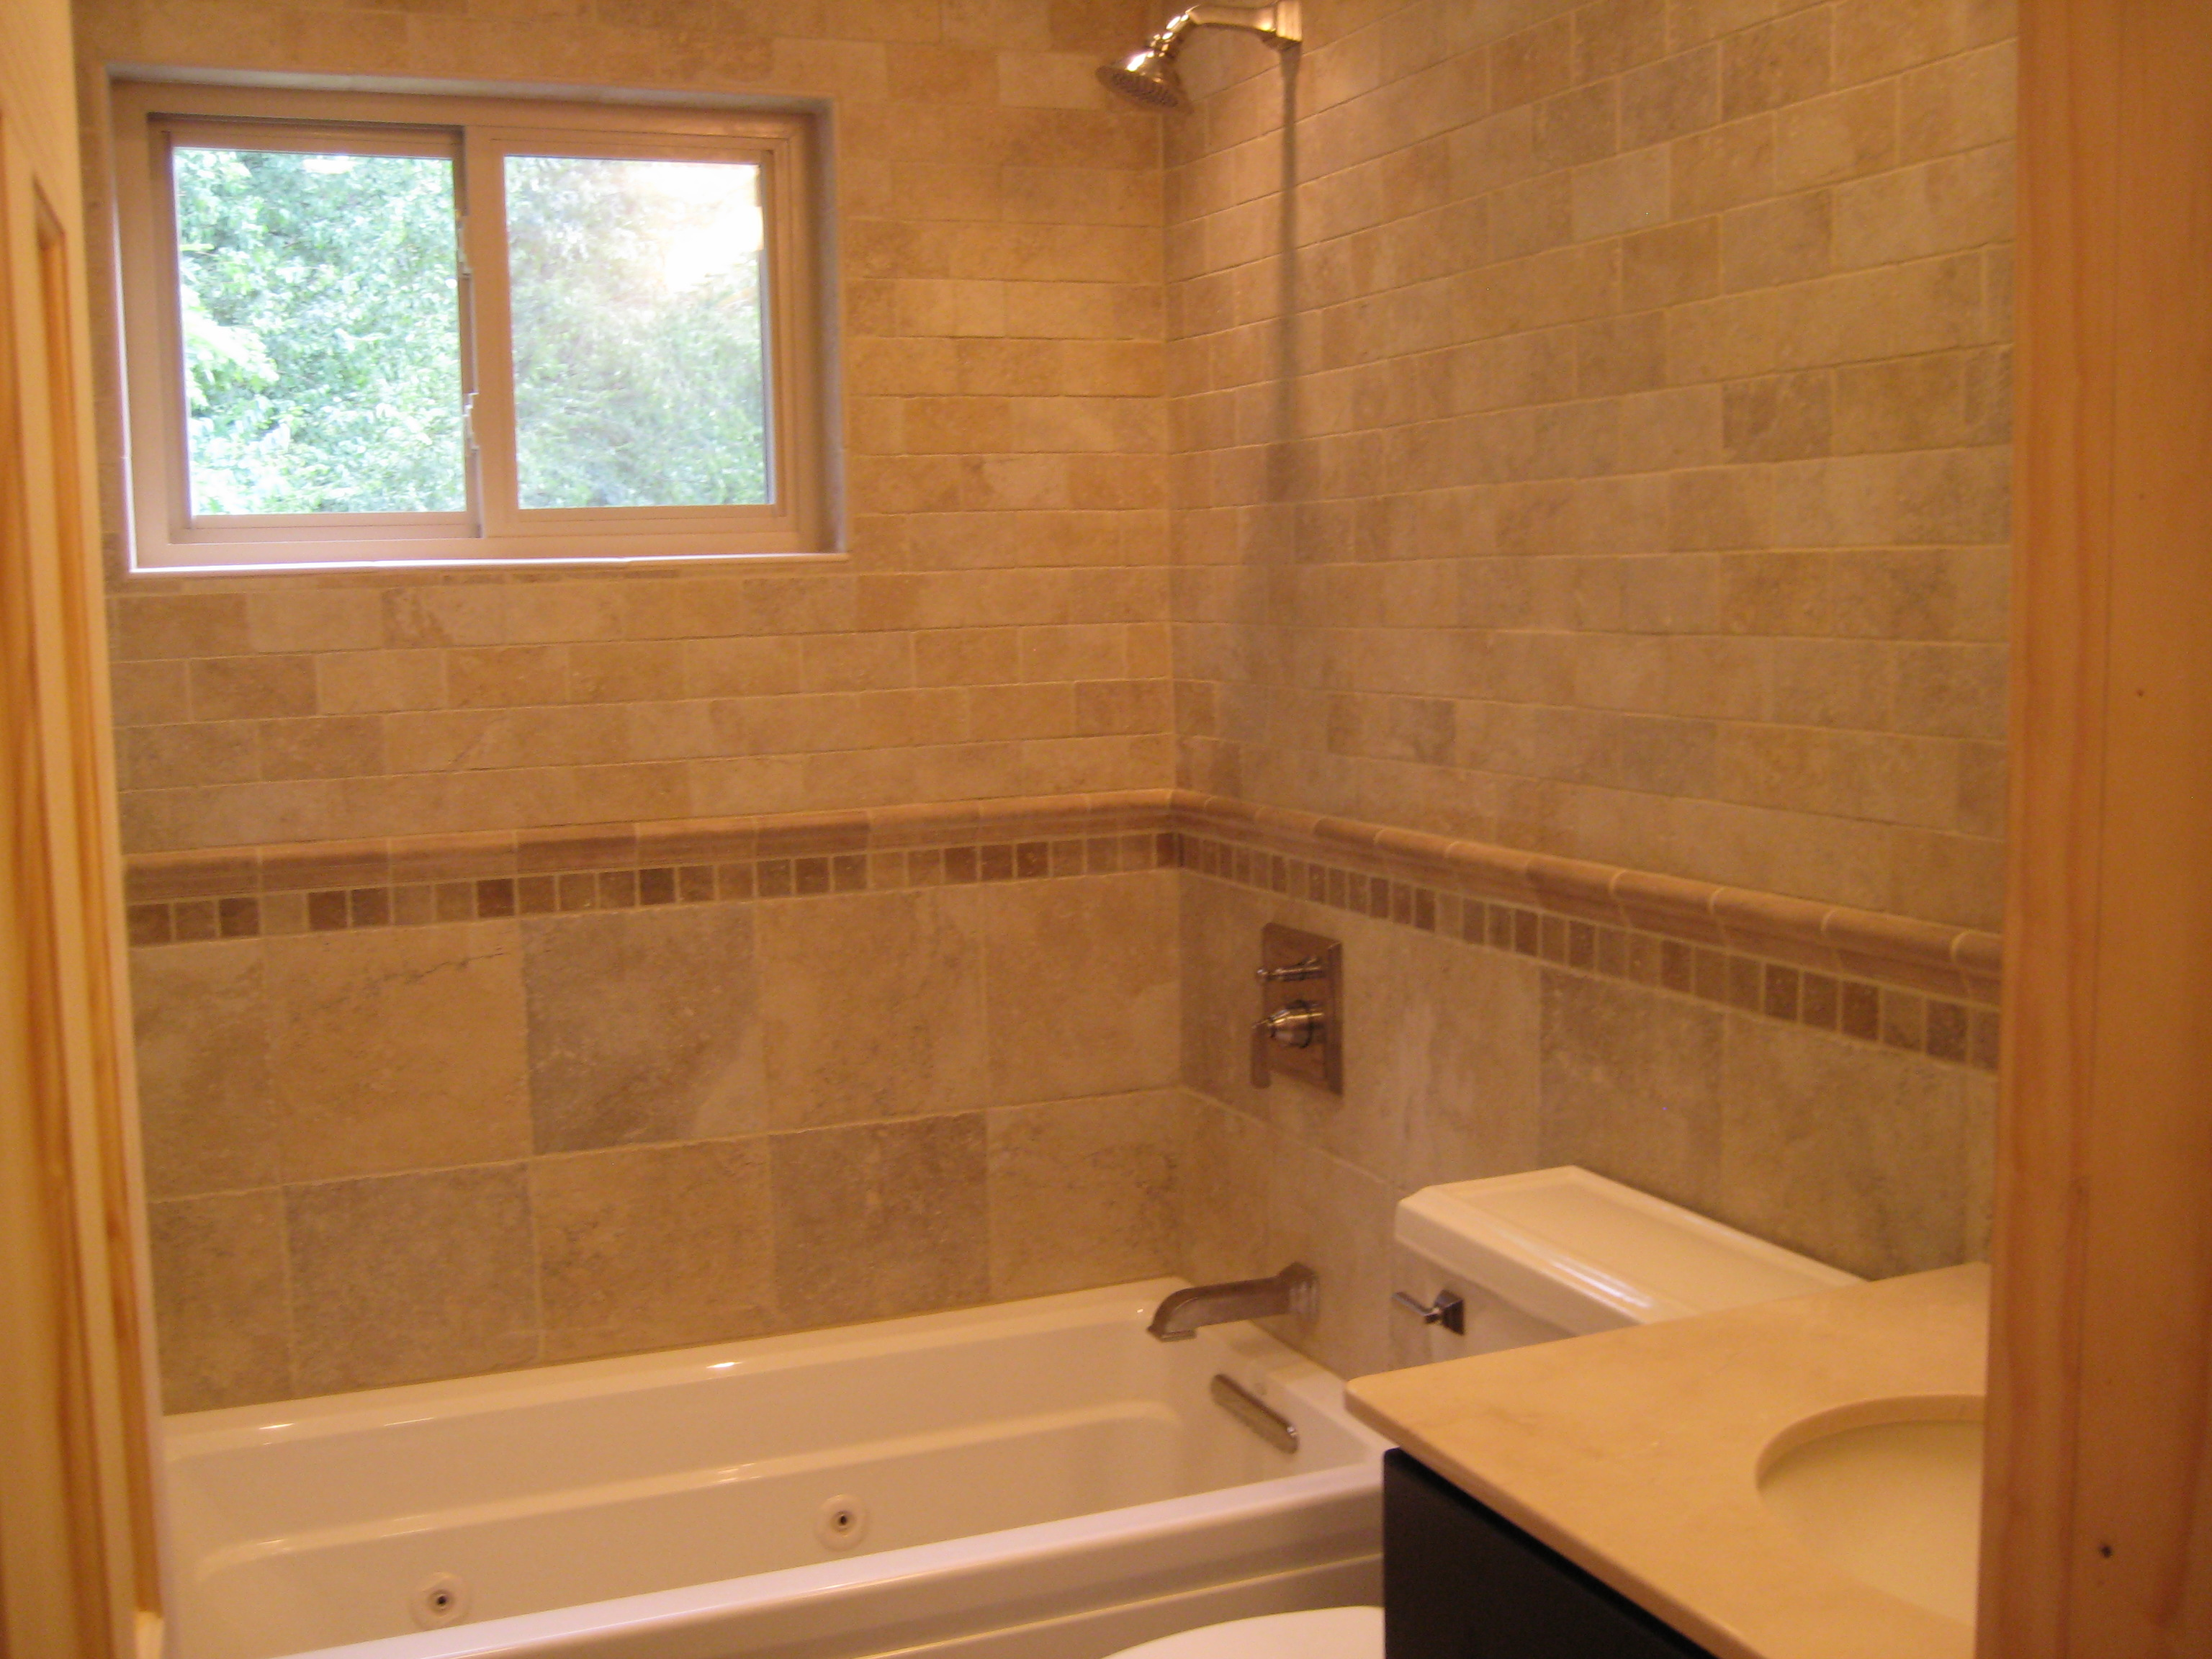 Bathroom remodel hire her home improvements inc for Show me pictures of remodeled bathrooms